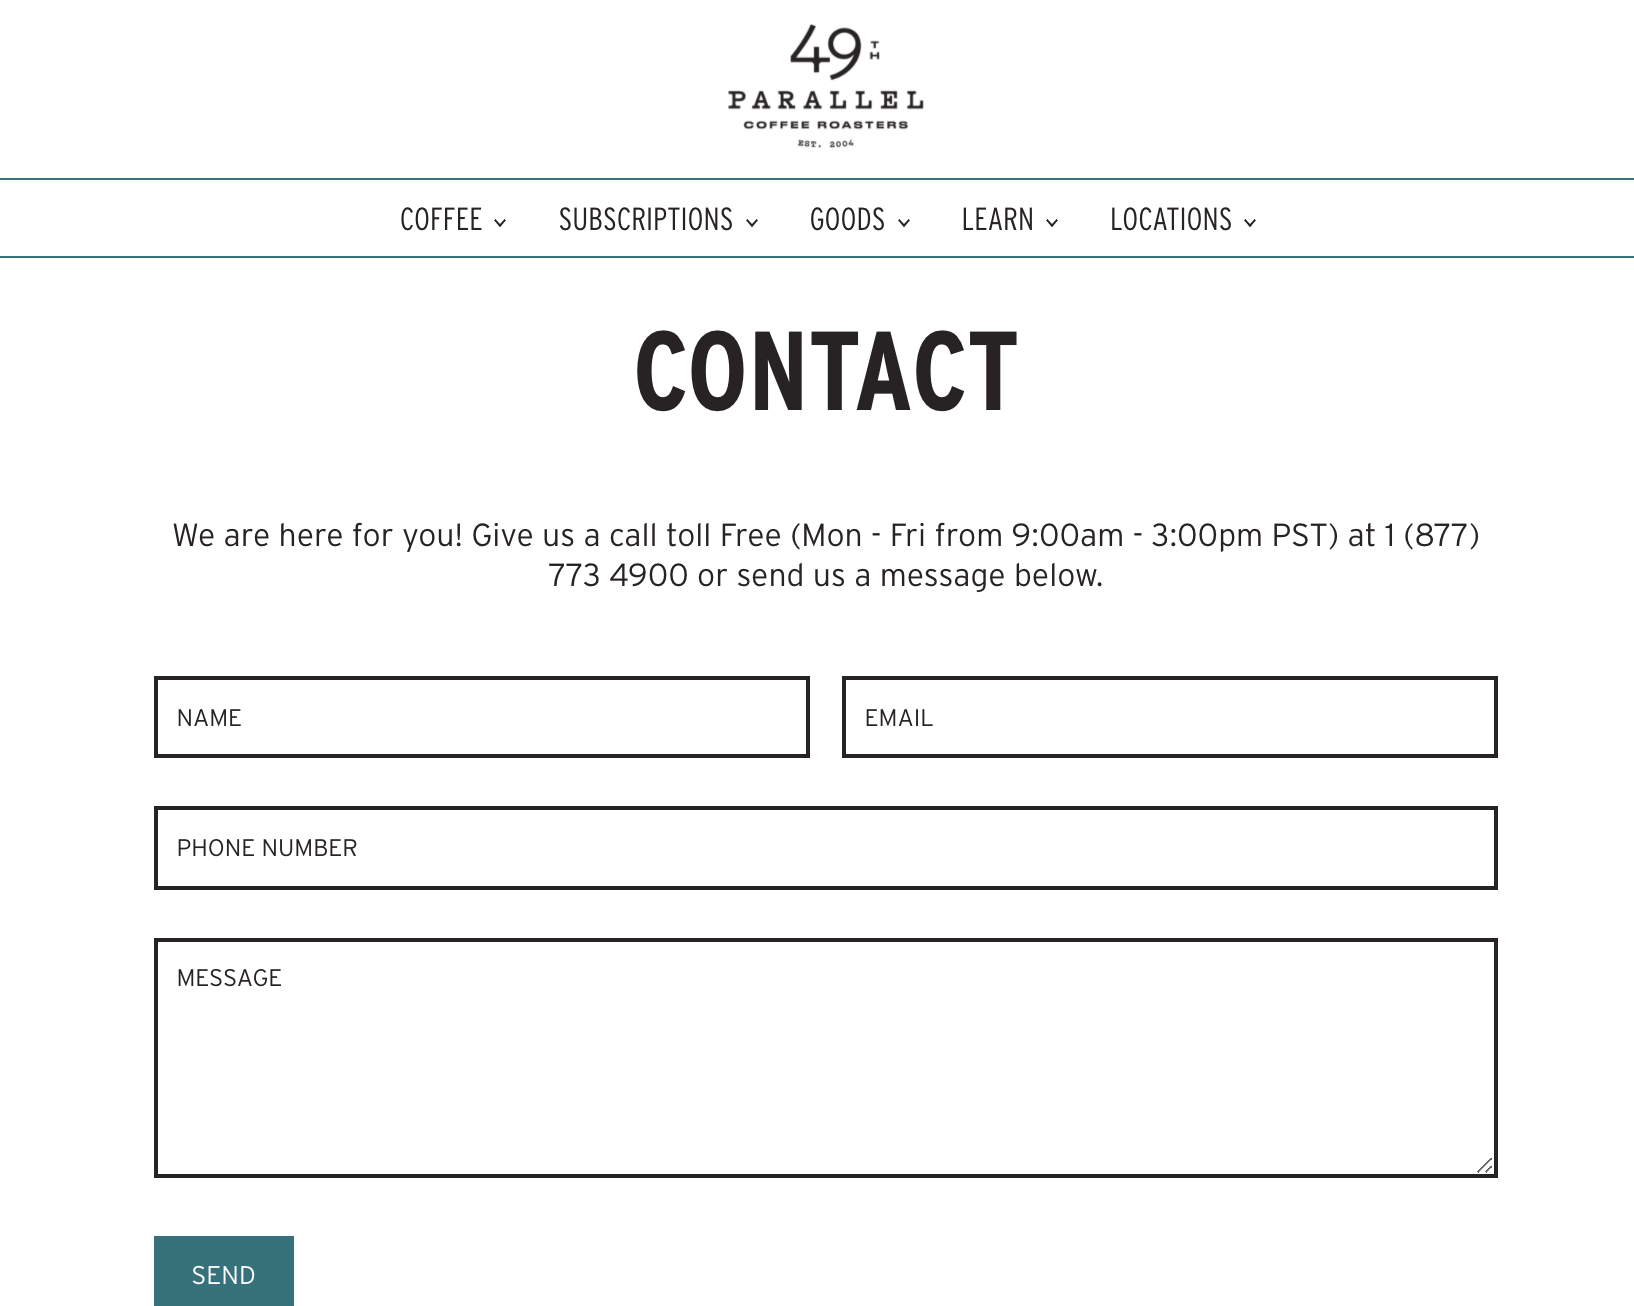 49th Coffee's Contact Form